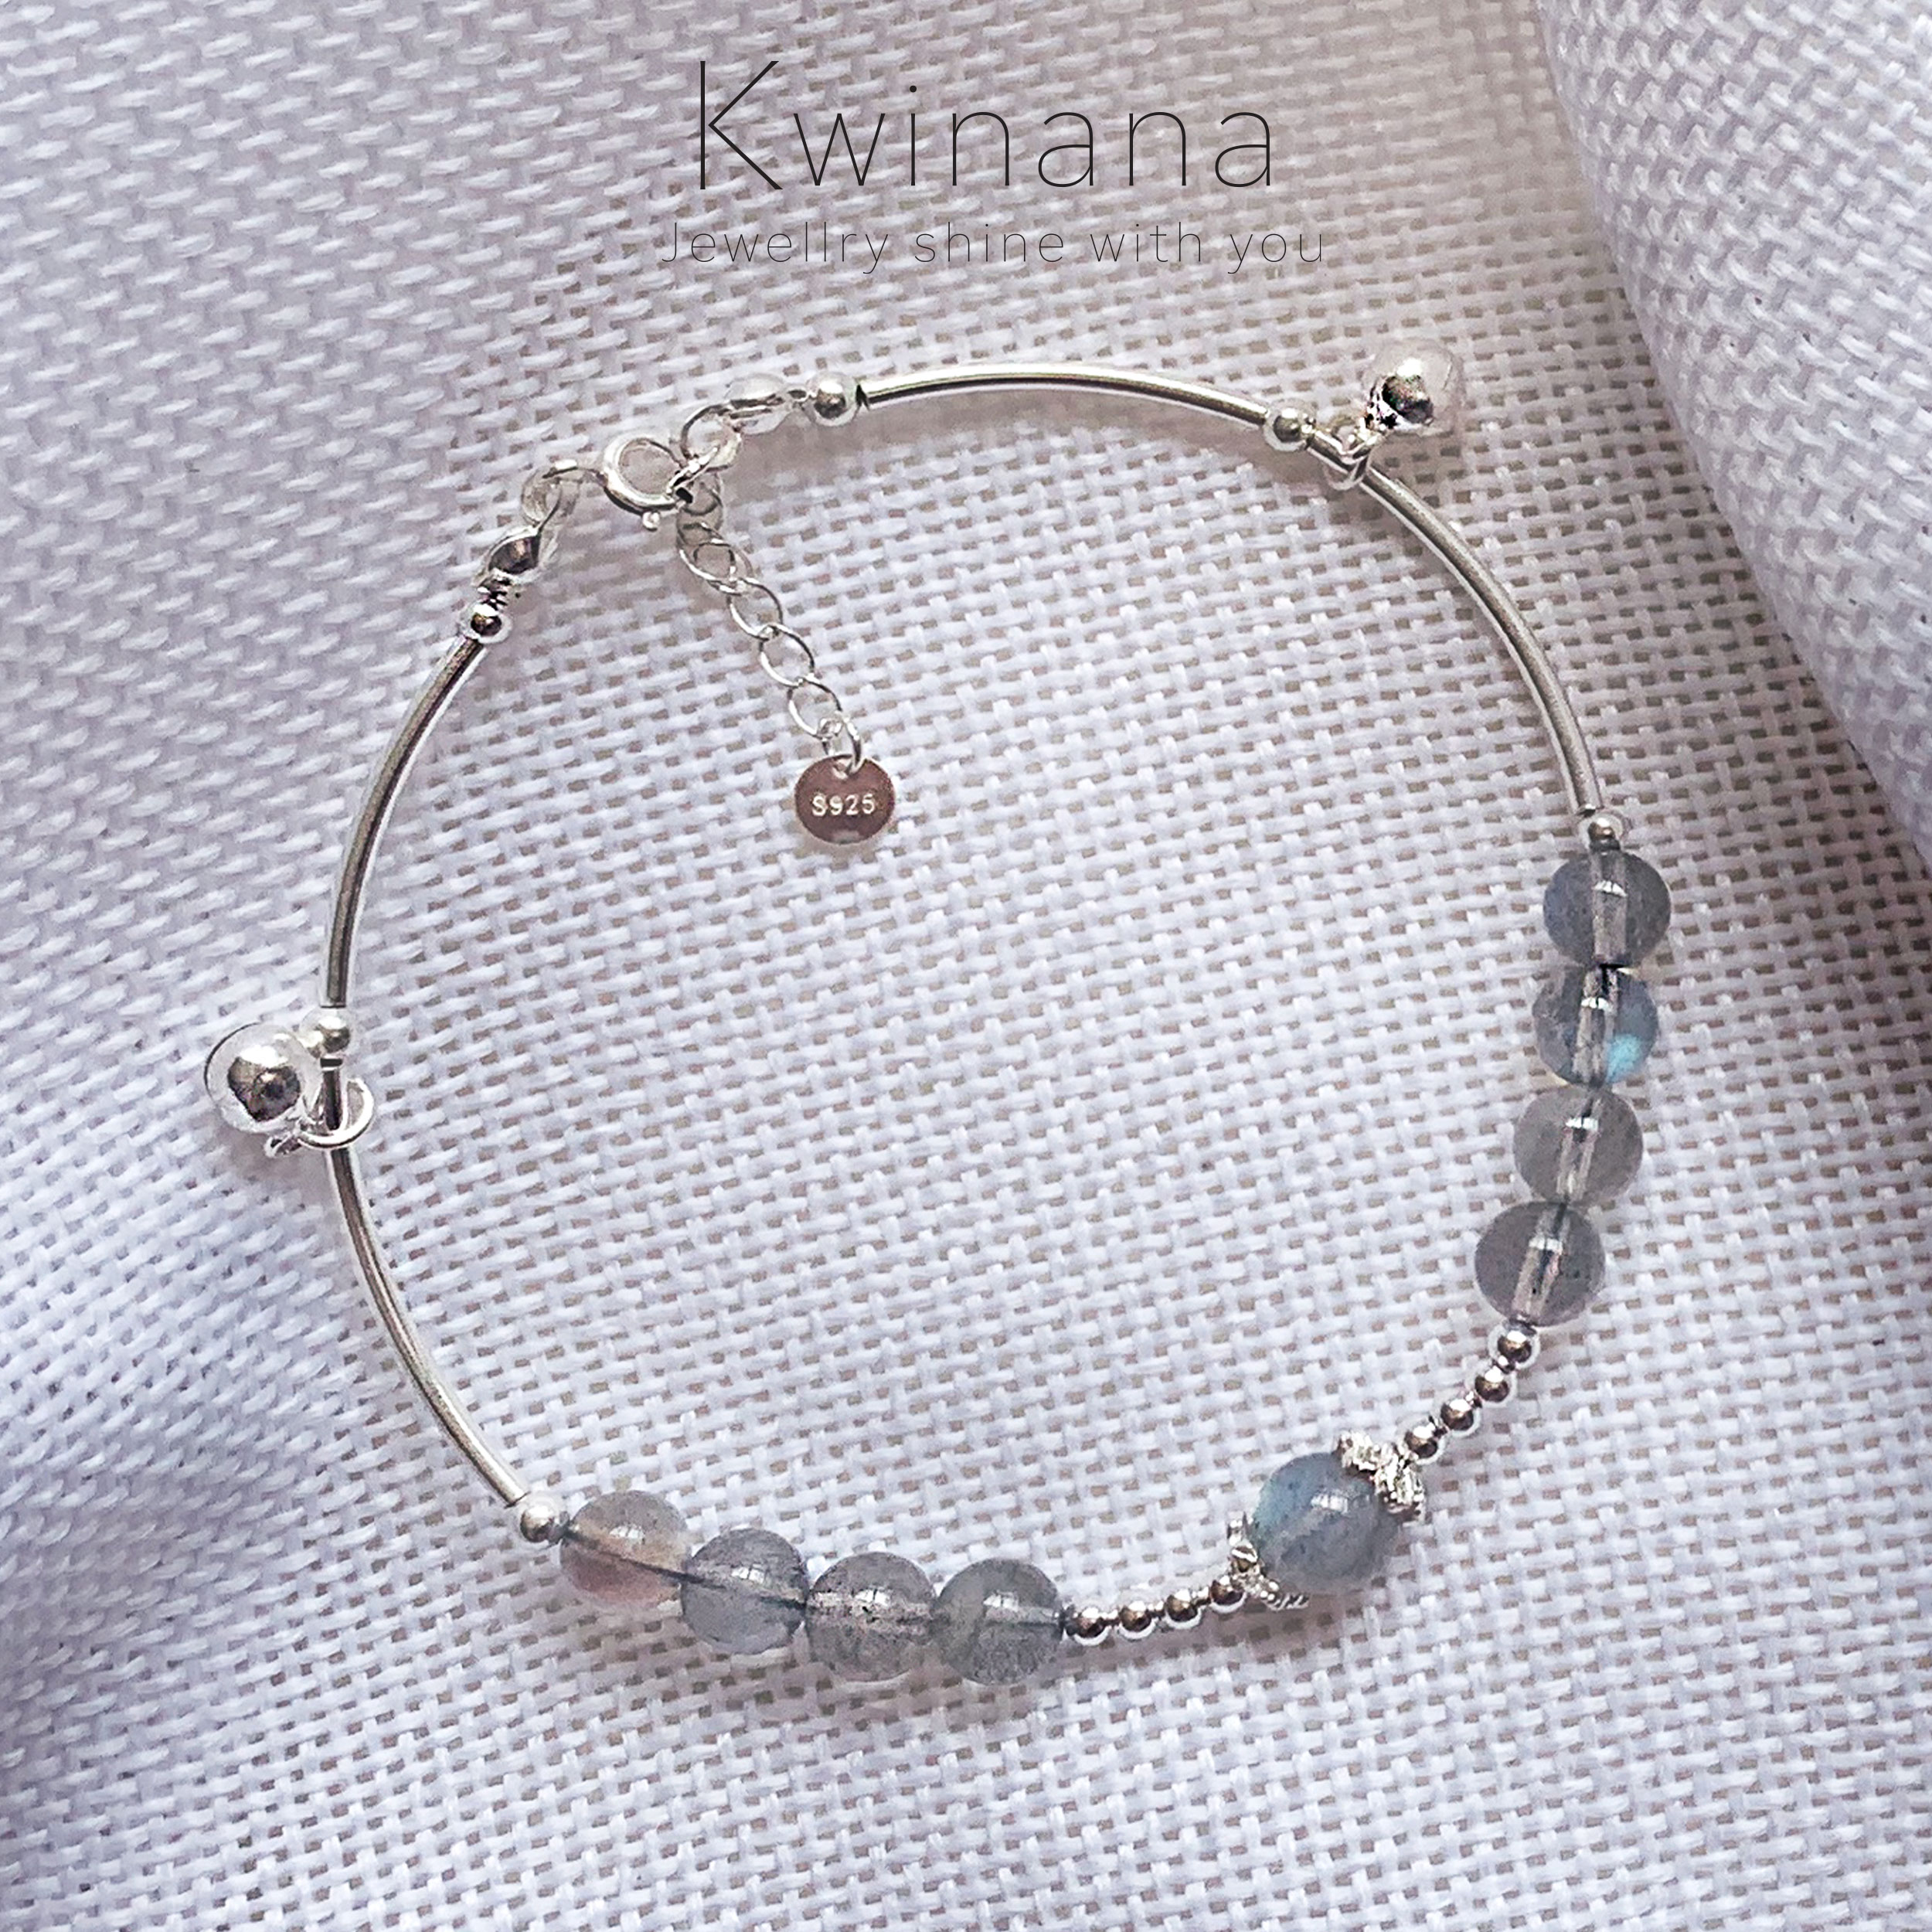 S925 Stirling Sliver Moonstone Bracelet